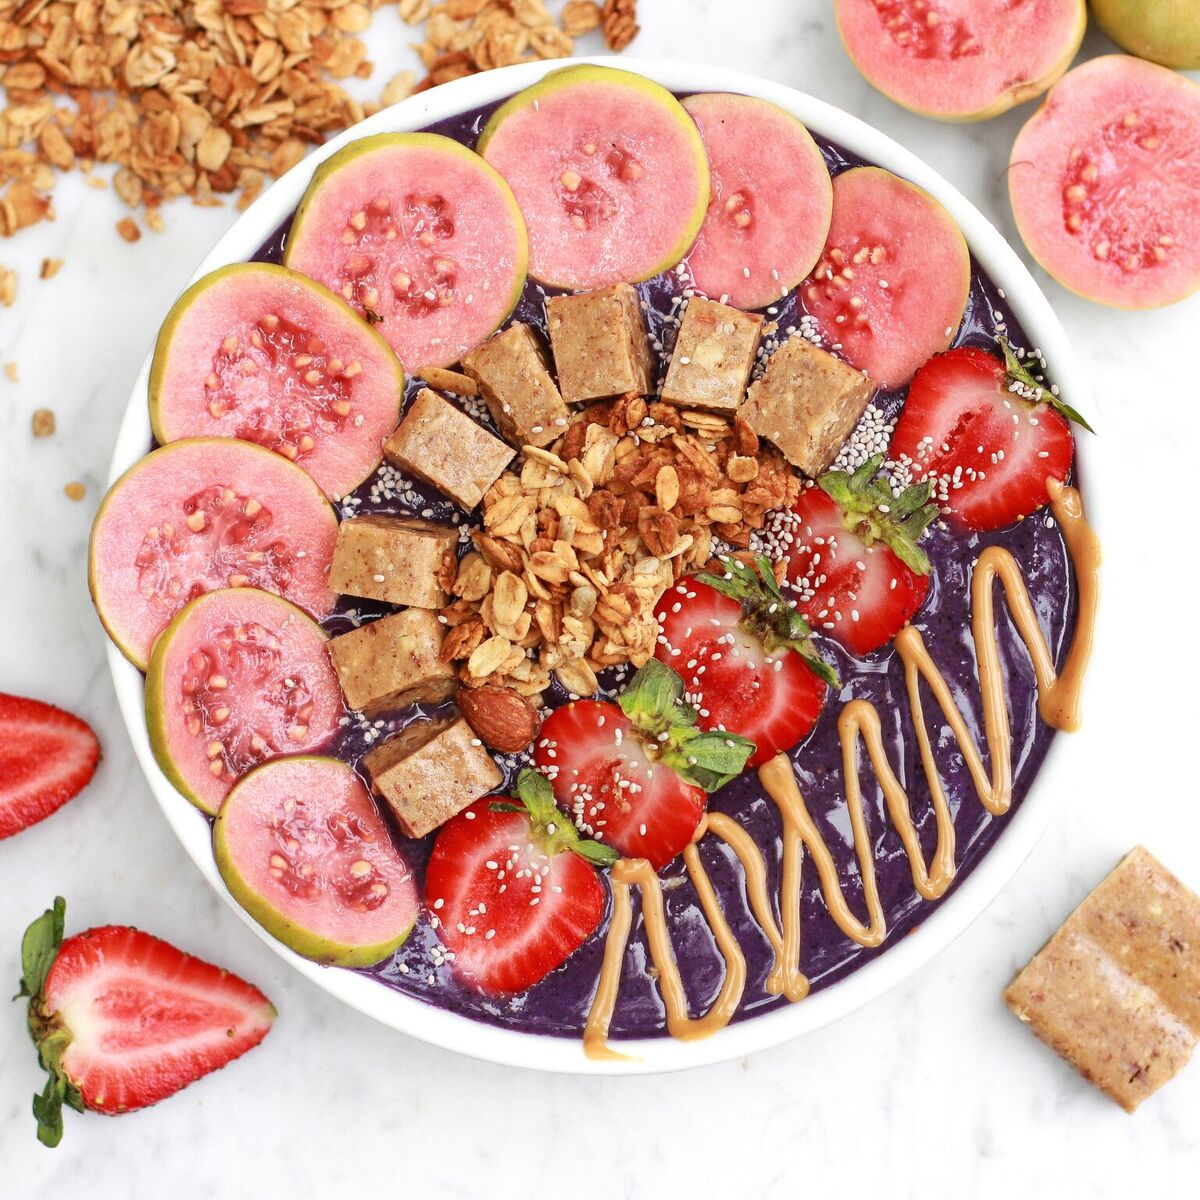 Tropical Infused Smoothie Bowl